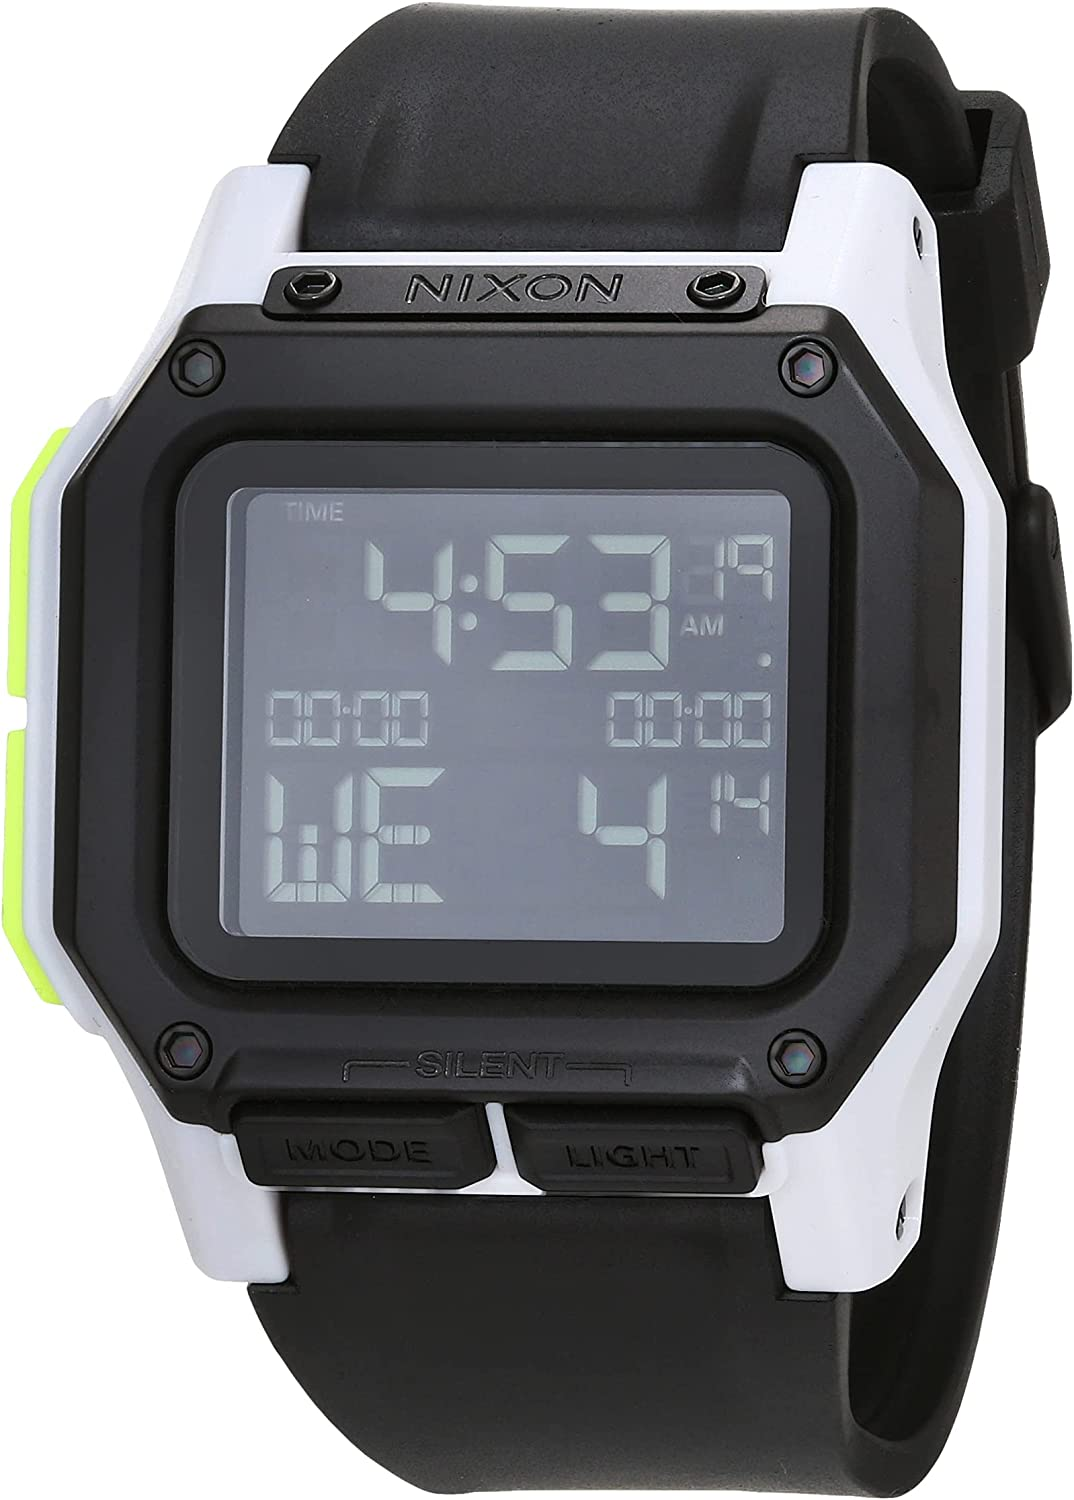 NIXON Regulus A1180-100m Water Resistant Men's Digital Sport Watch (46mm Watch Face, 29mm-24mm PU/Rubber/Silicone Band)